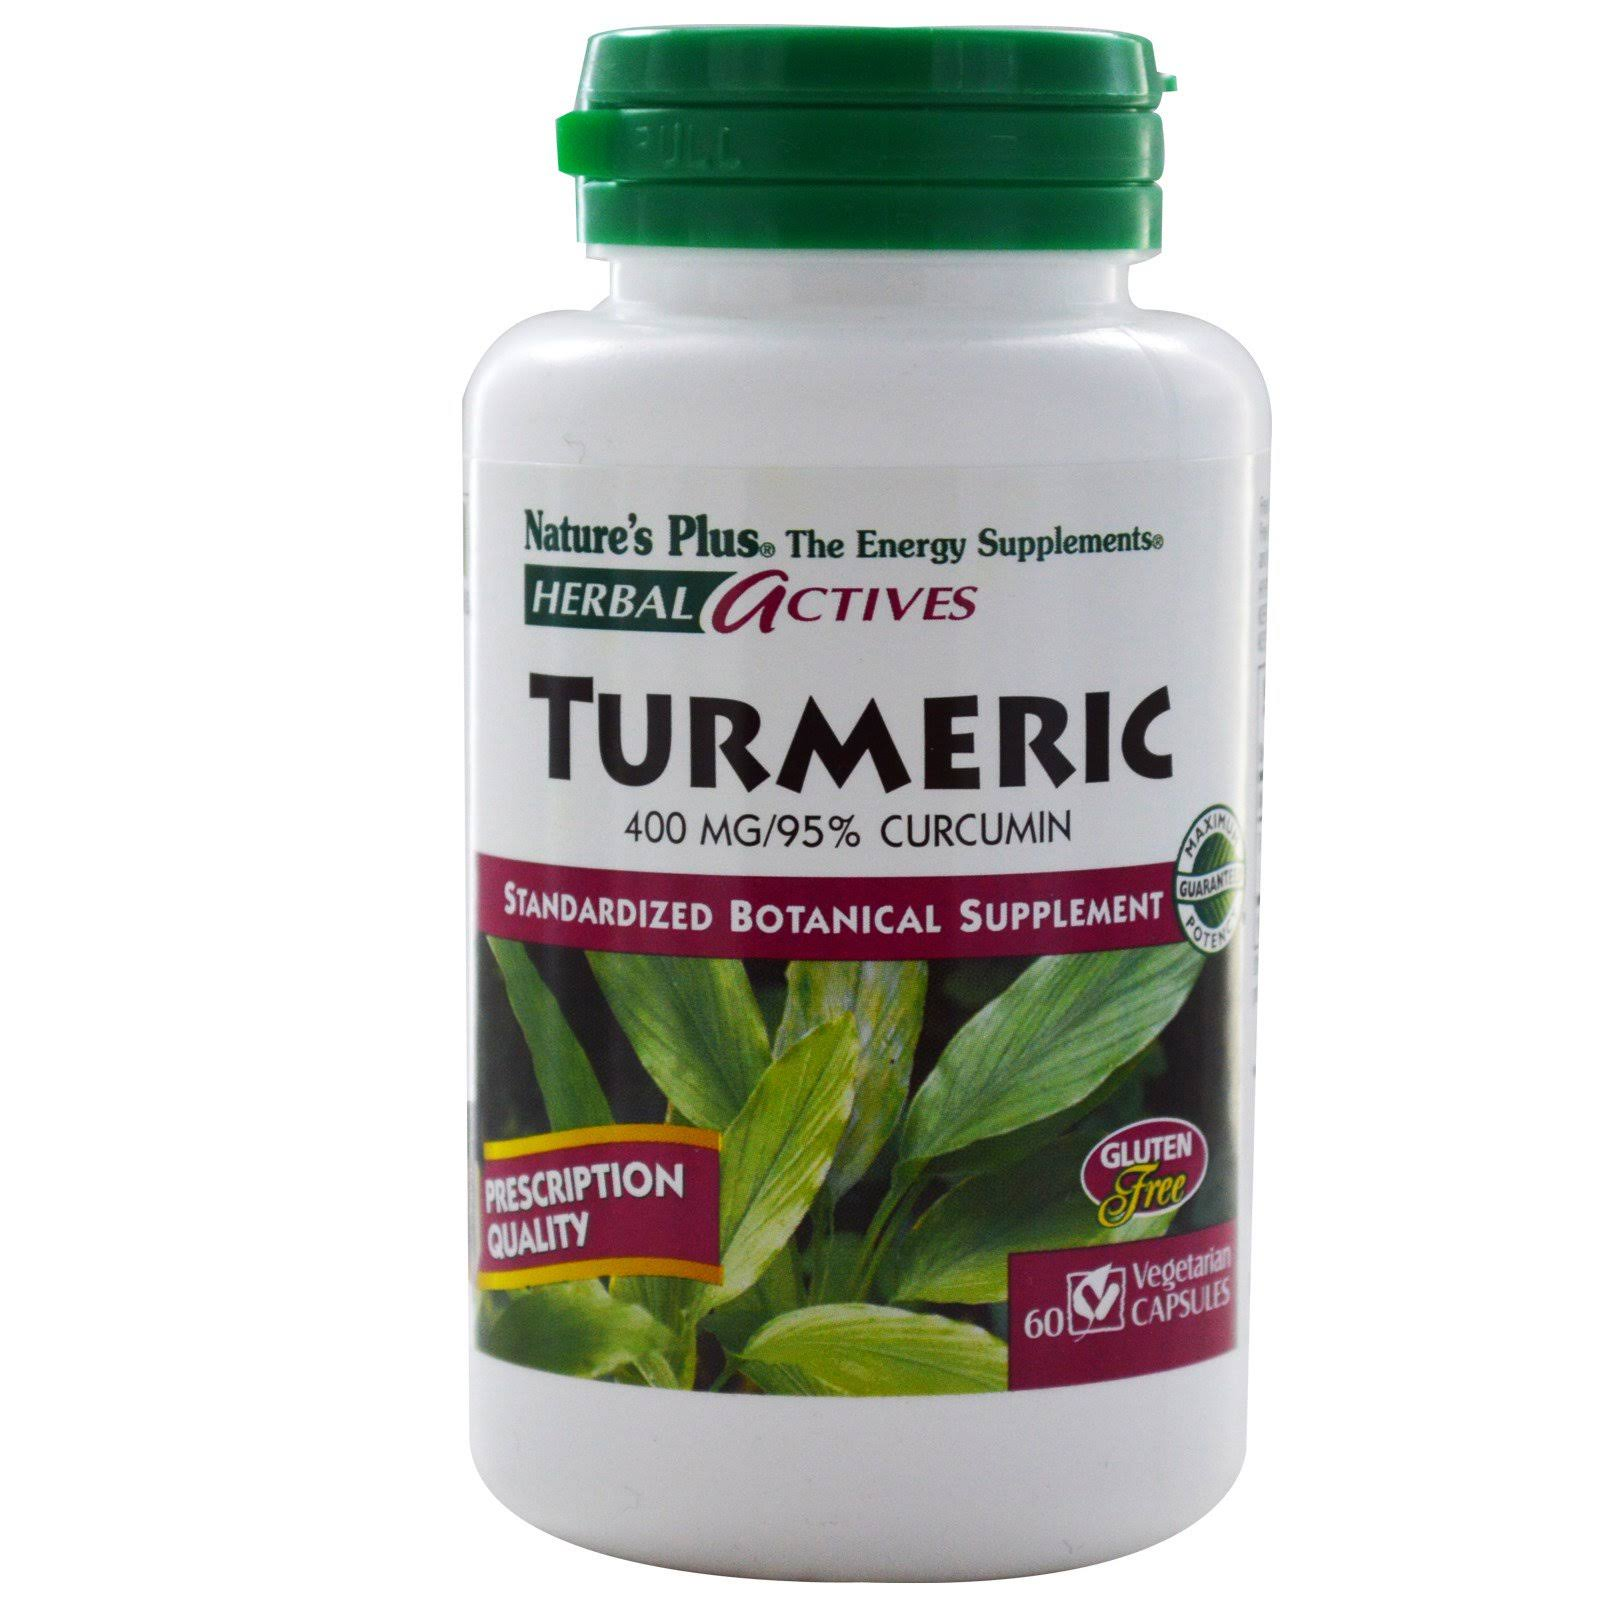 Nature's Plus Turmeric Extract - 60 Capsules